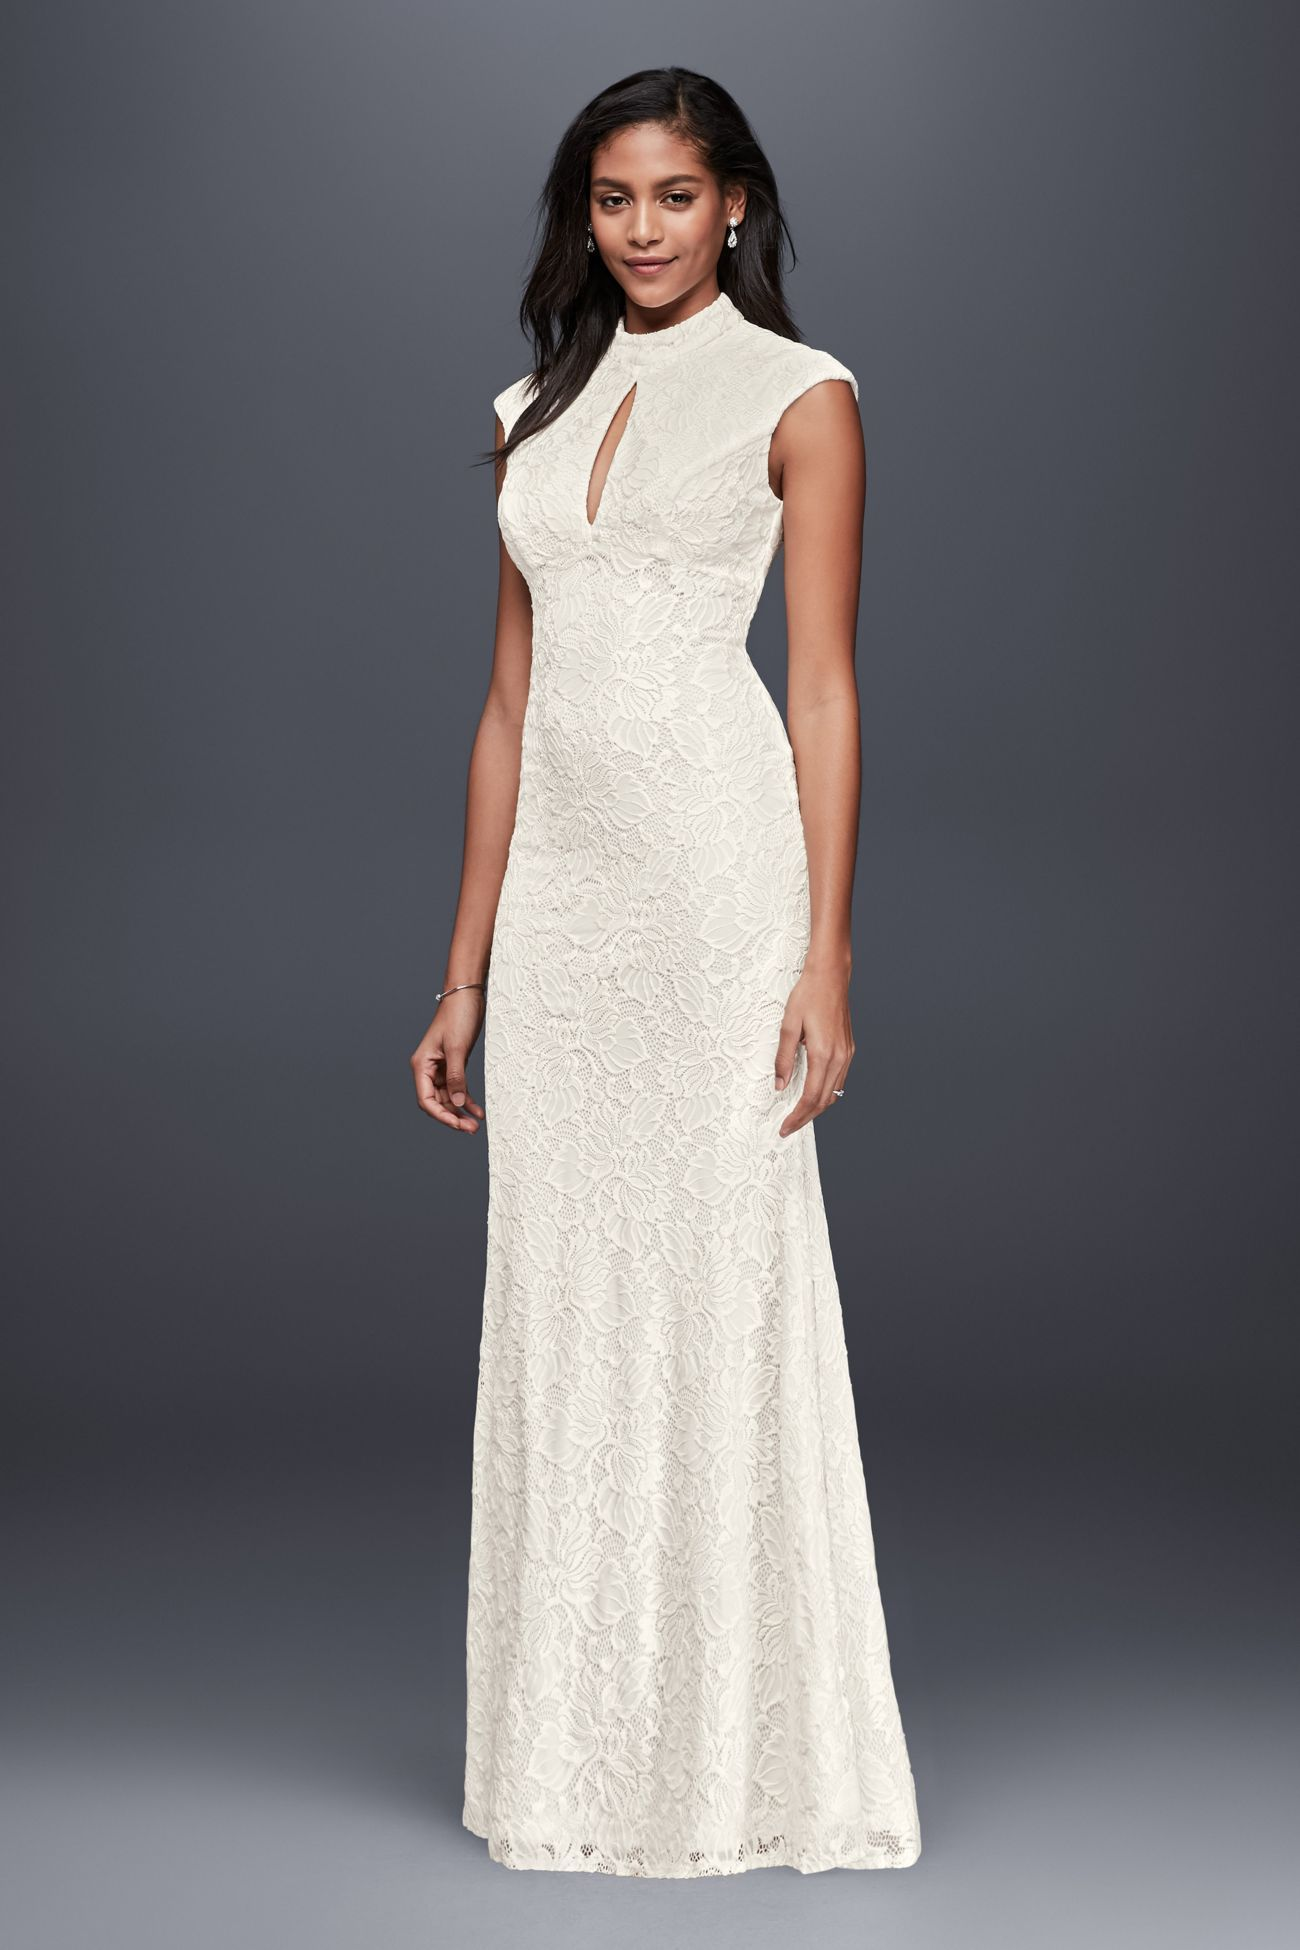 Form fitting lace wedding dresses  A  vineyard wedding  Pinterest  Wedding Vineyard wedding